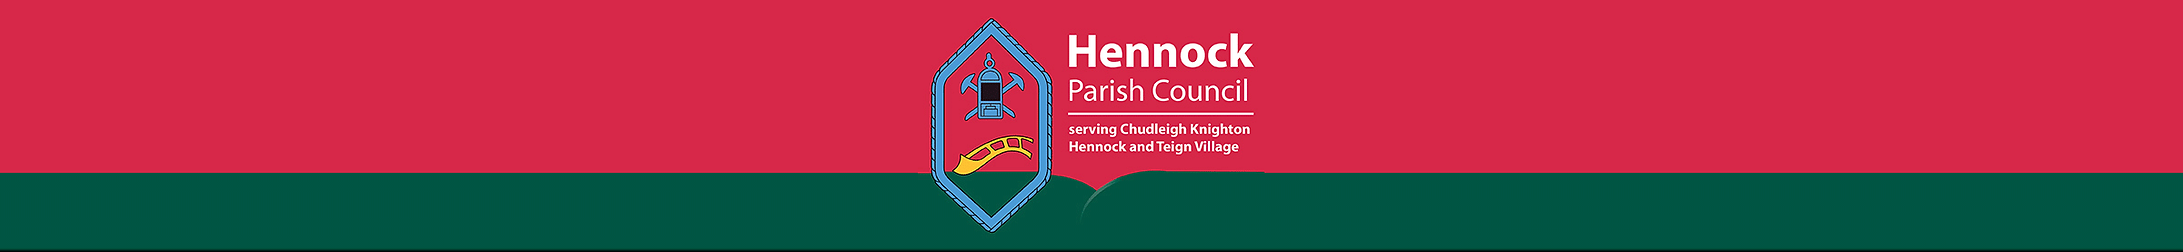 Hennock Parish Council logo